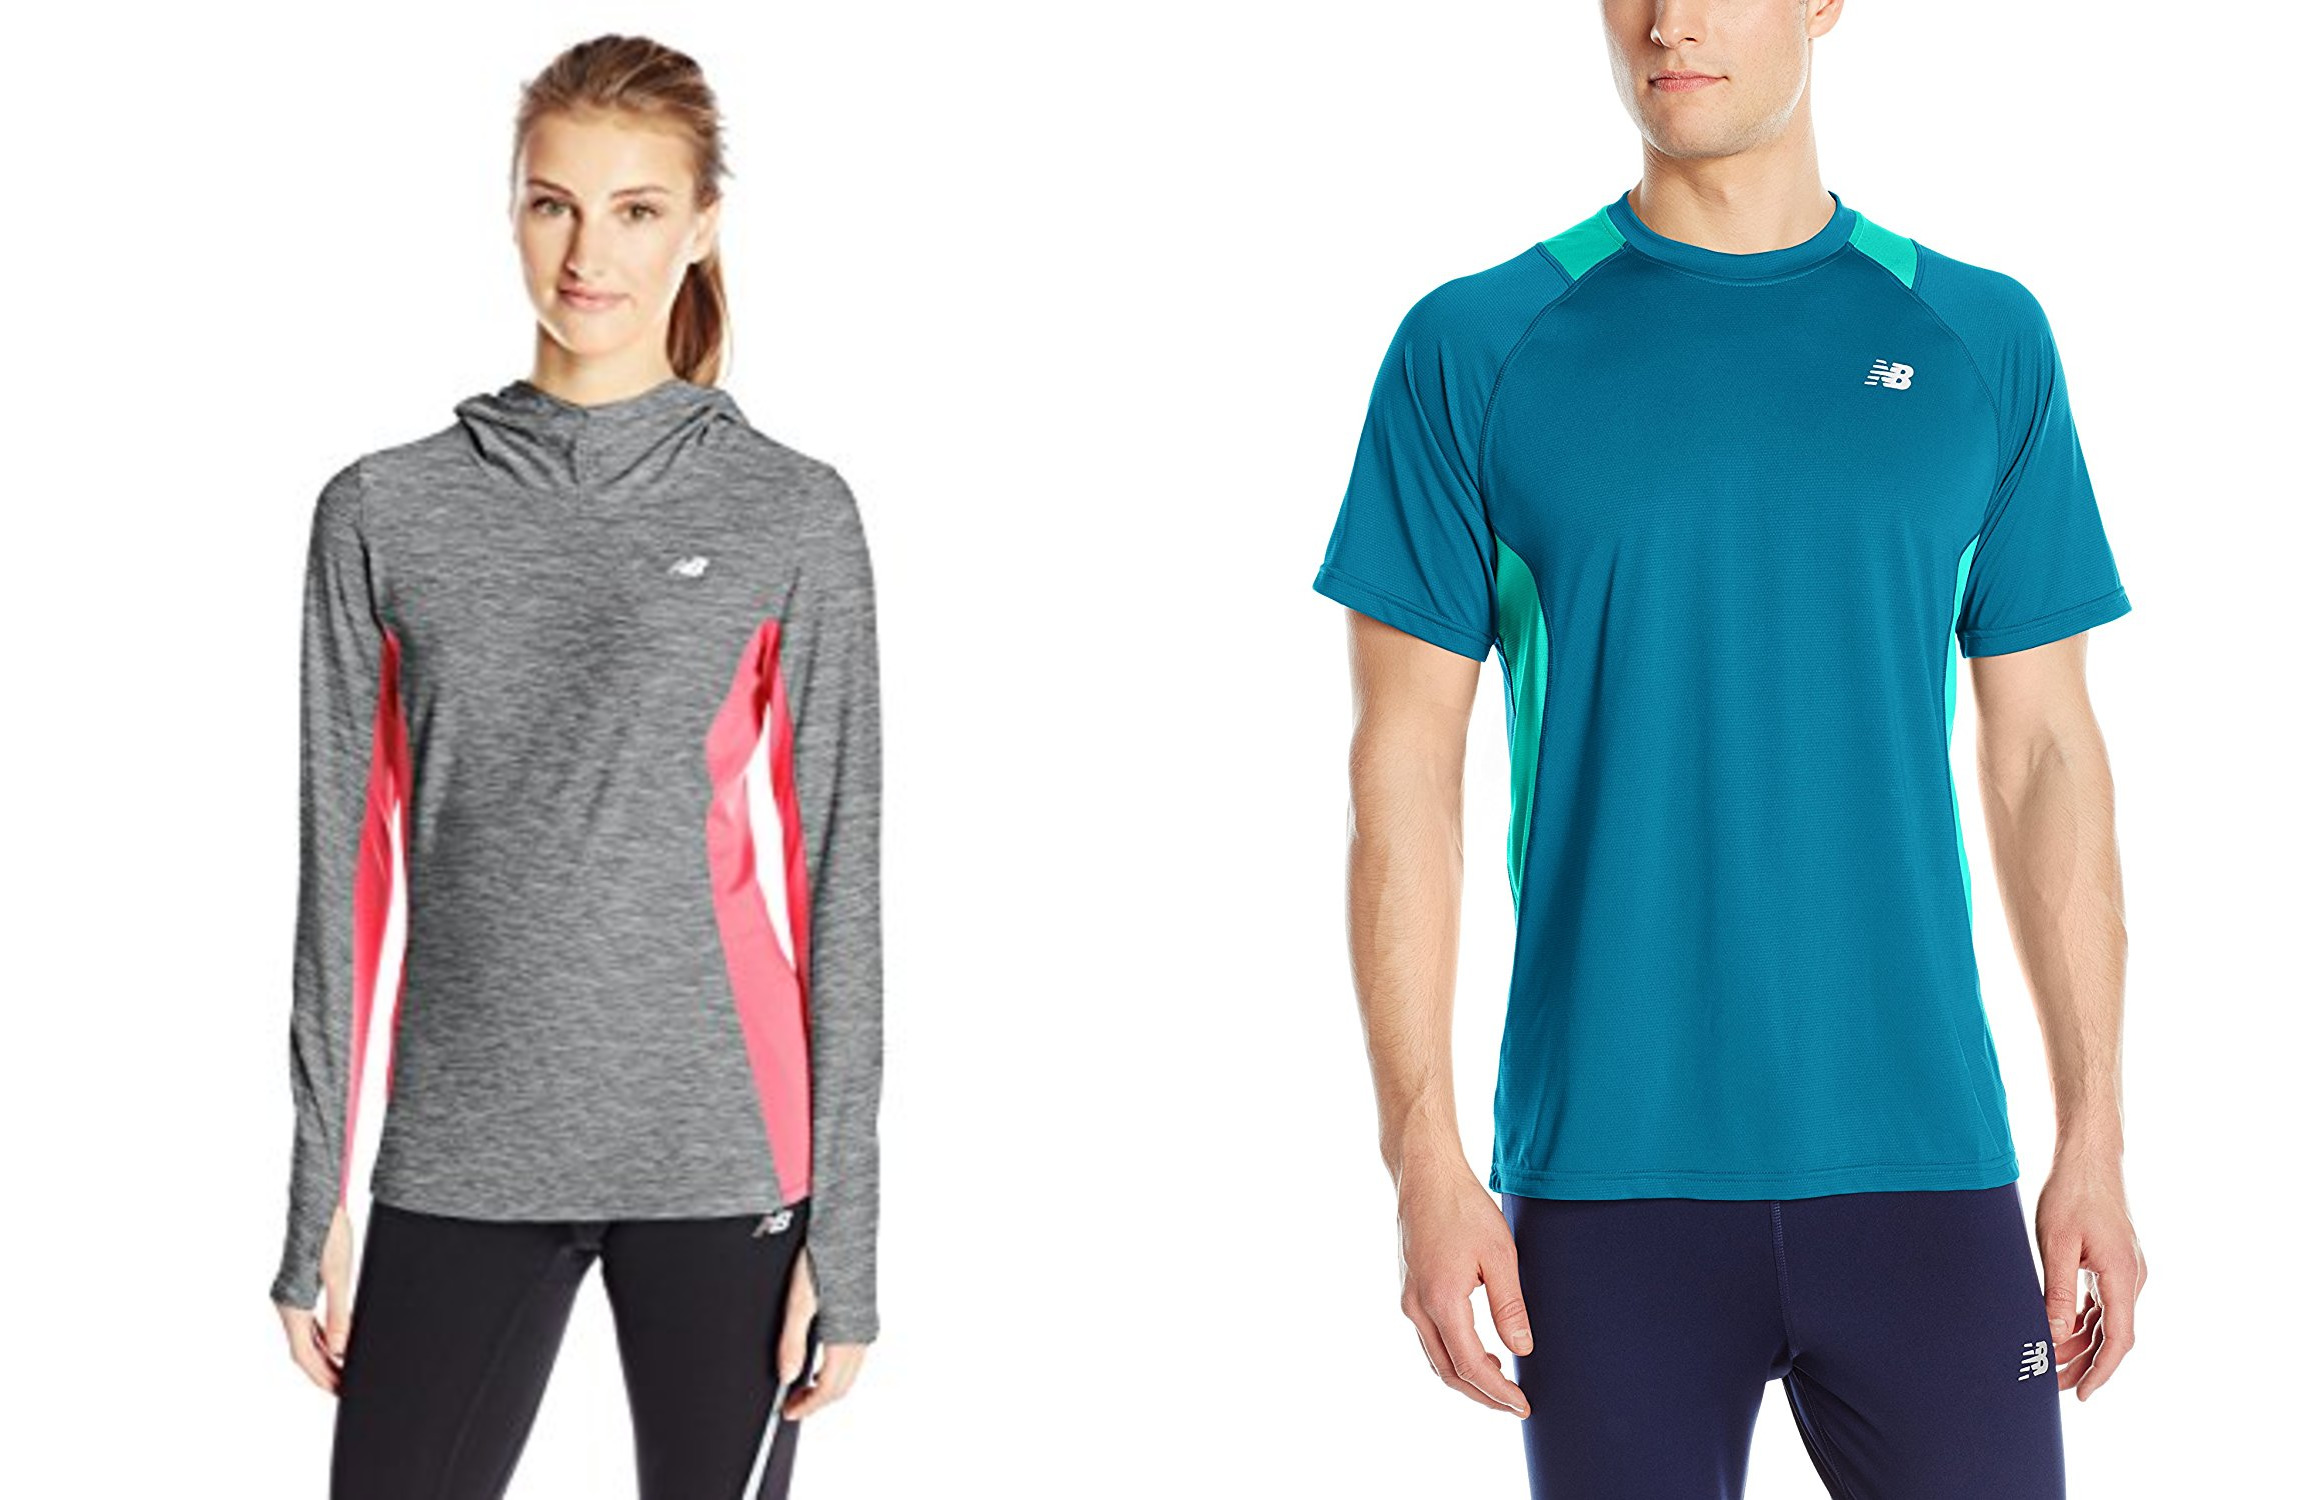 Amazon.com: 40% off New Balance Clothing